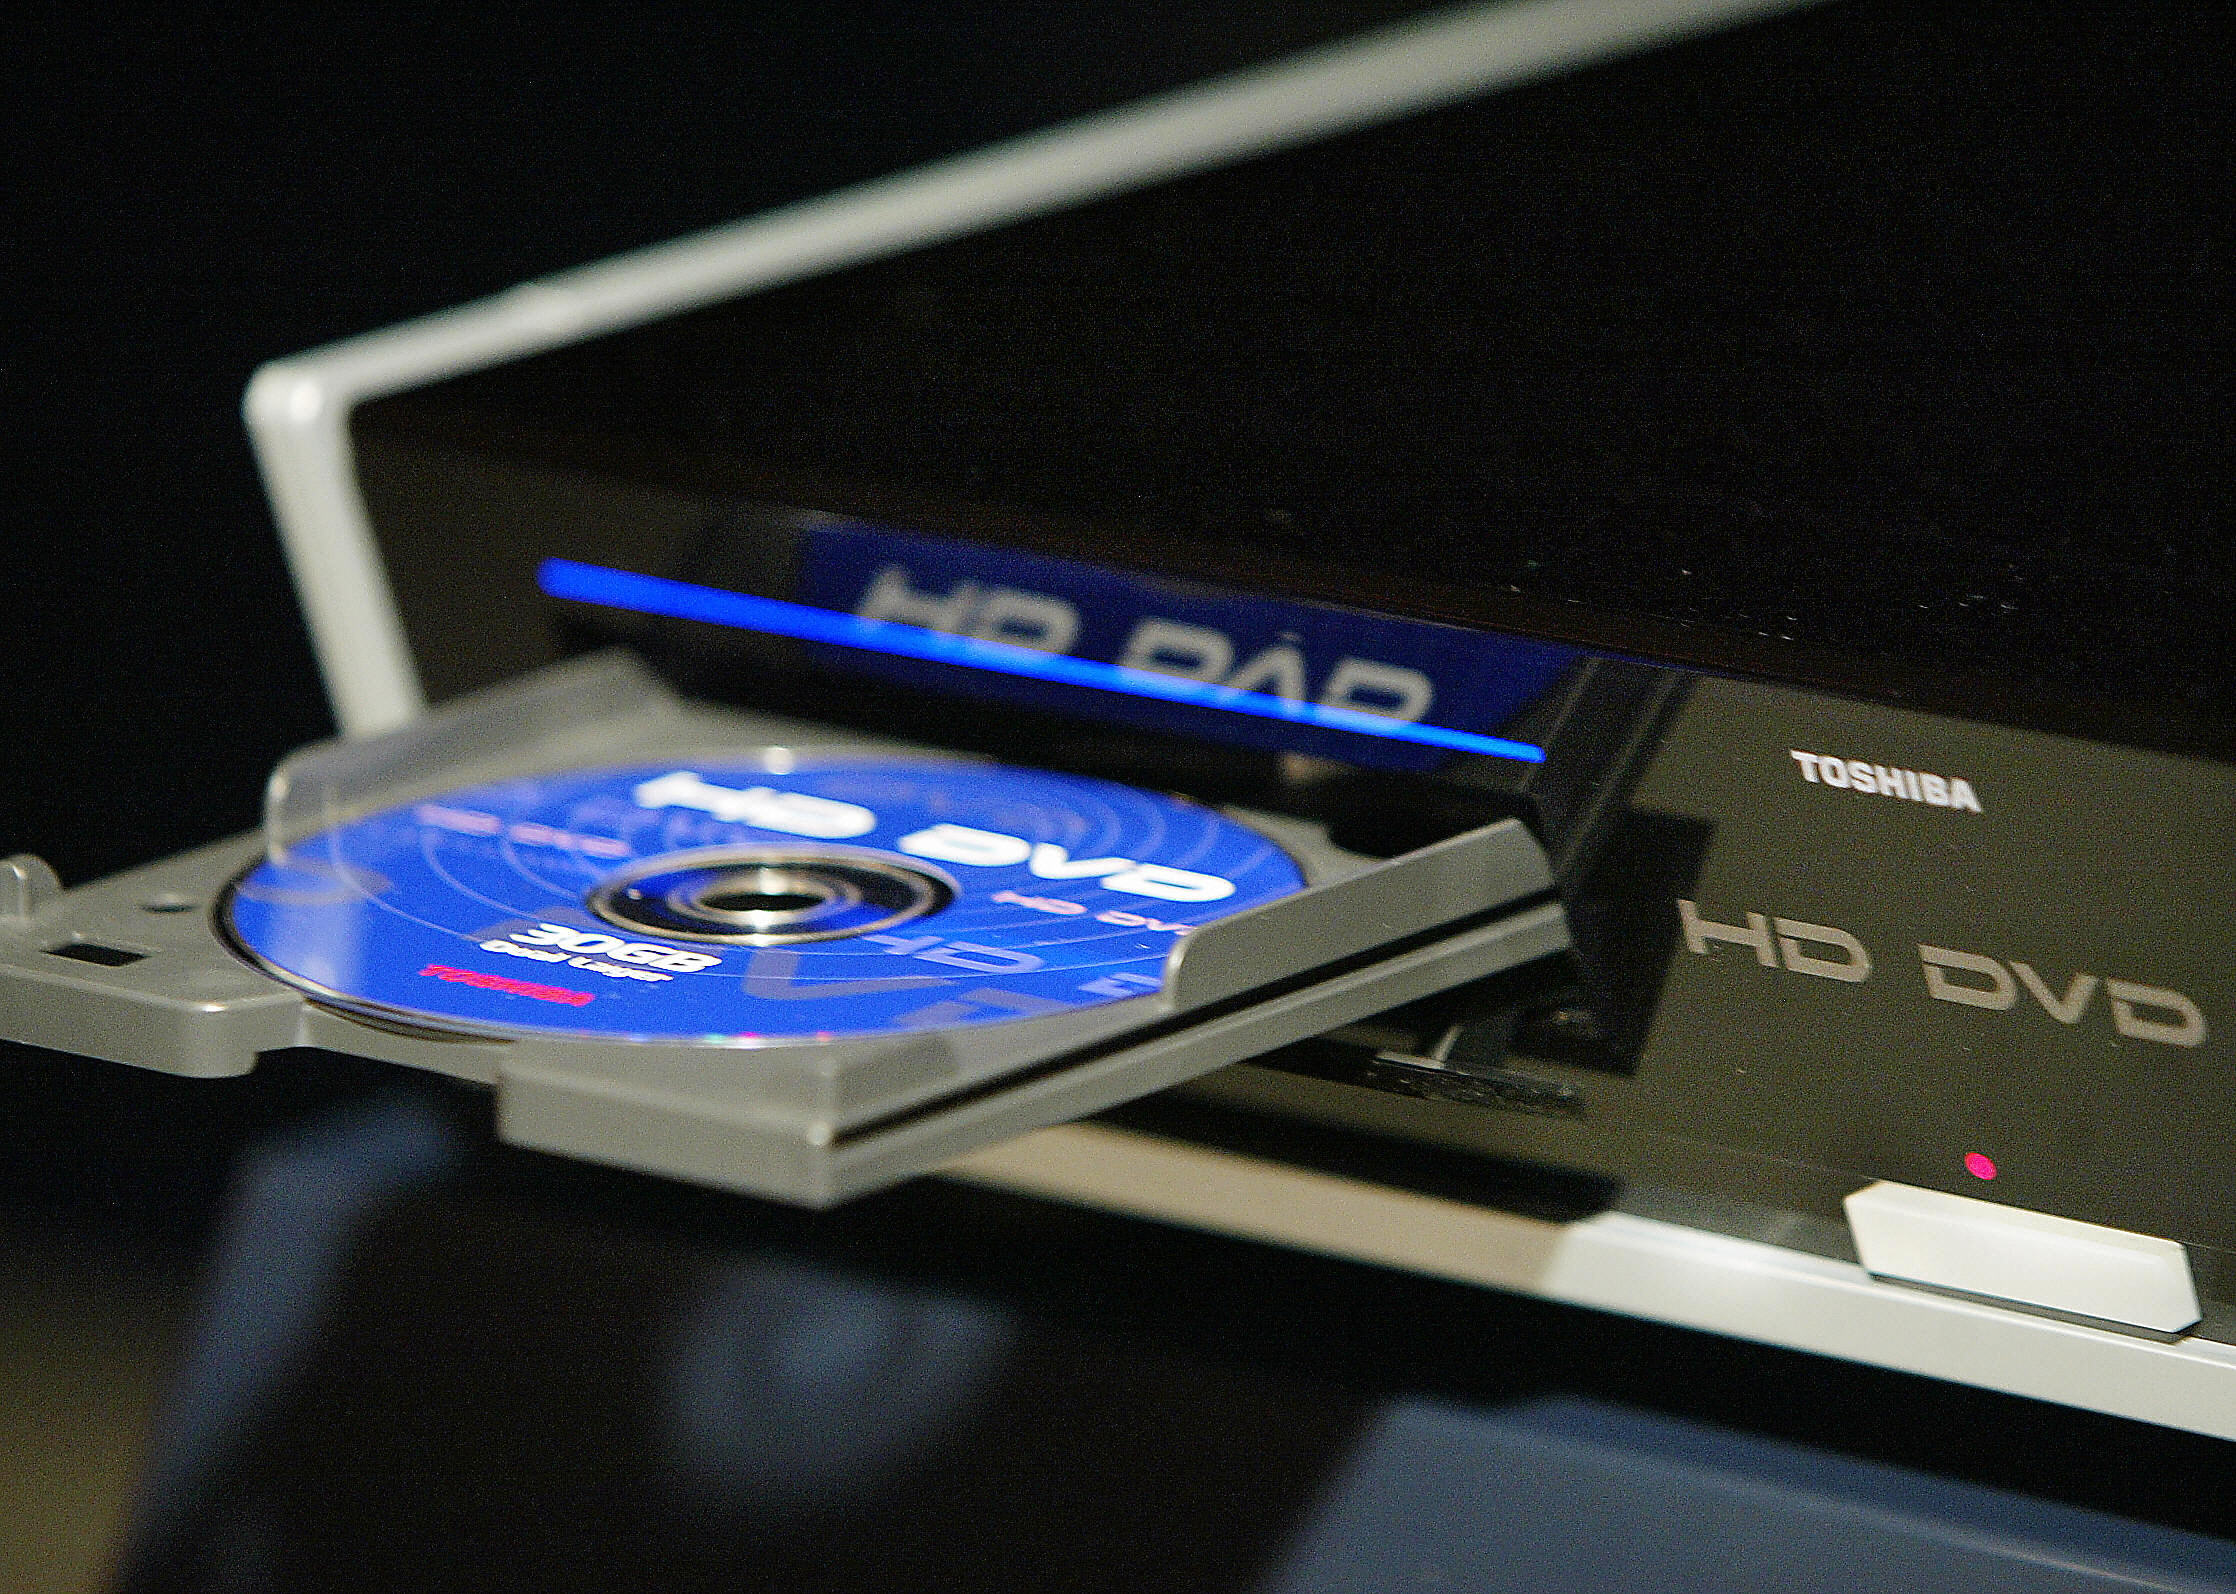 Toshiba unveils the prototype model of their new high-definition DVD (HD-DVD) player